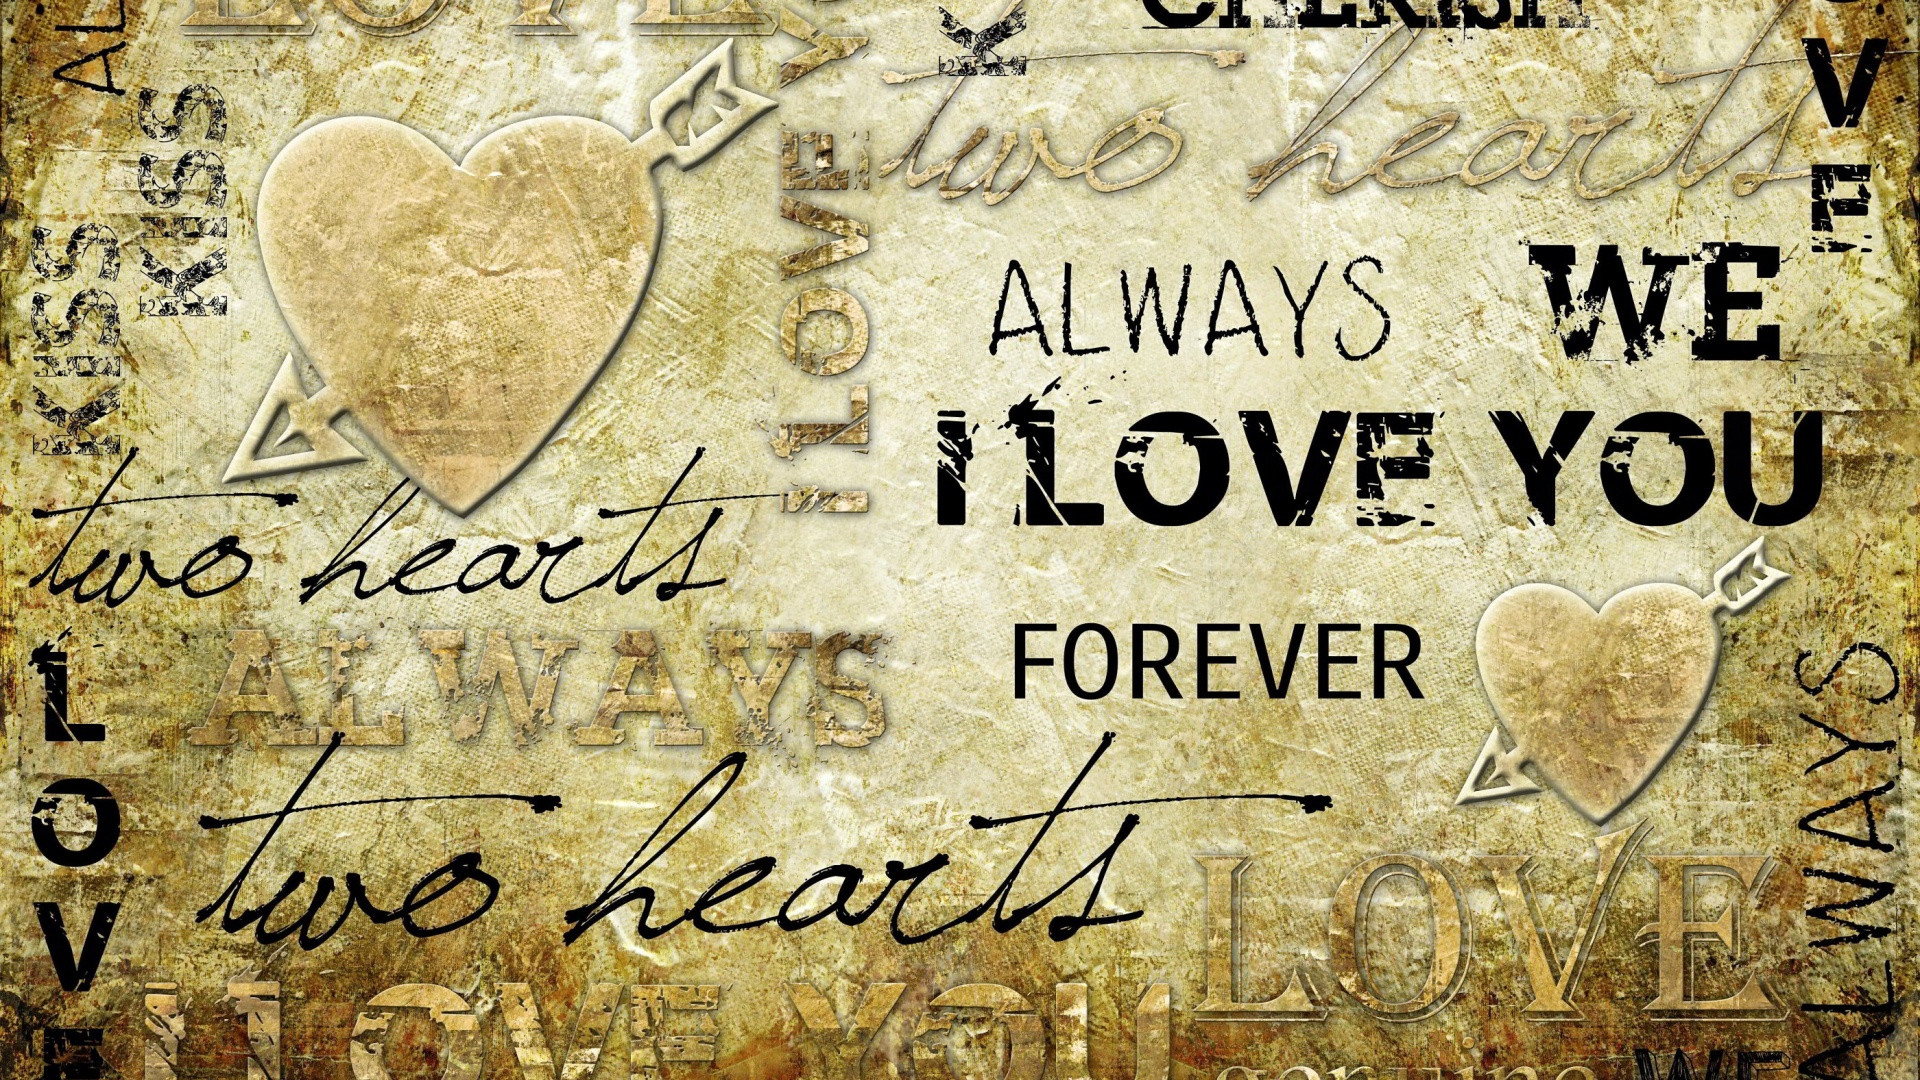 754 Love HD Wallpapers Background Images - Wallpaper ...